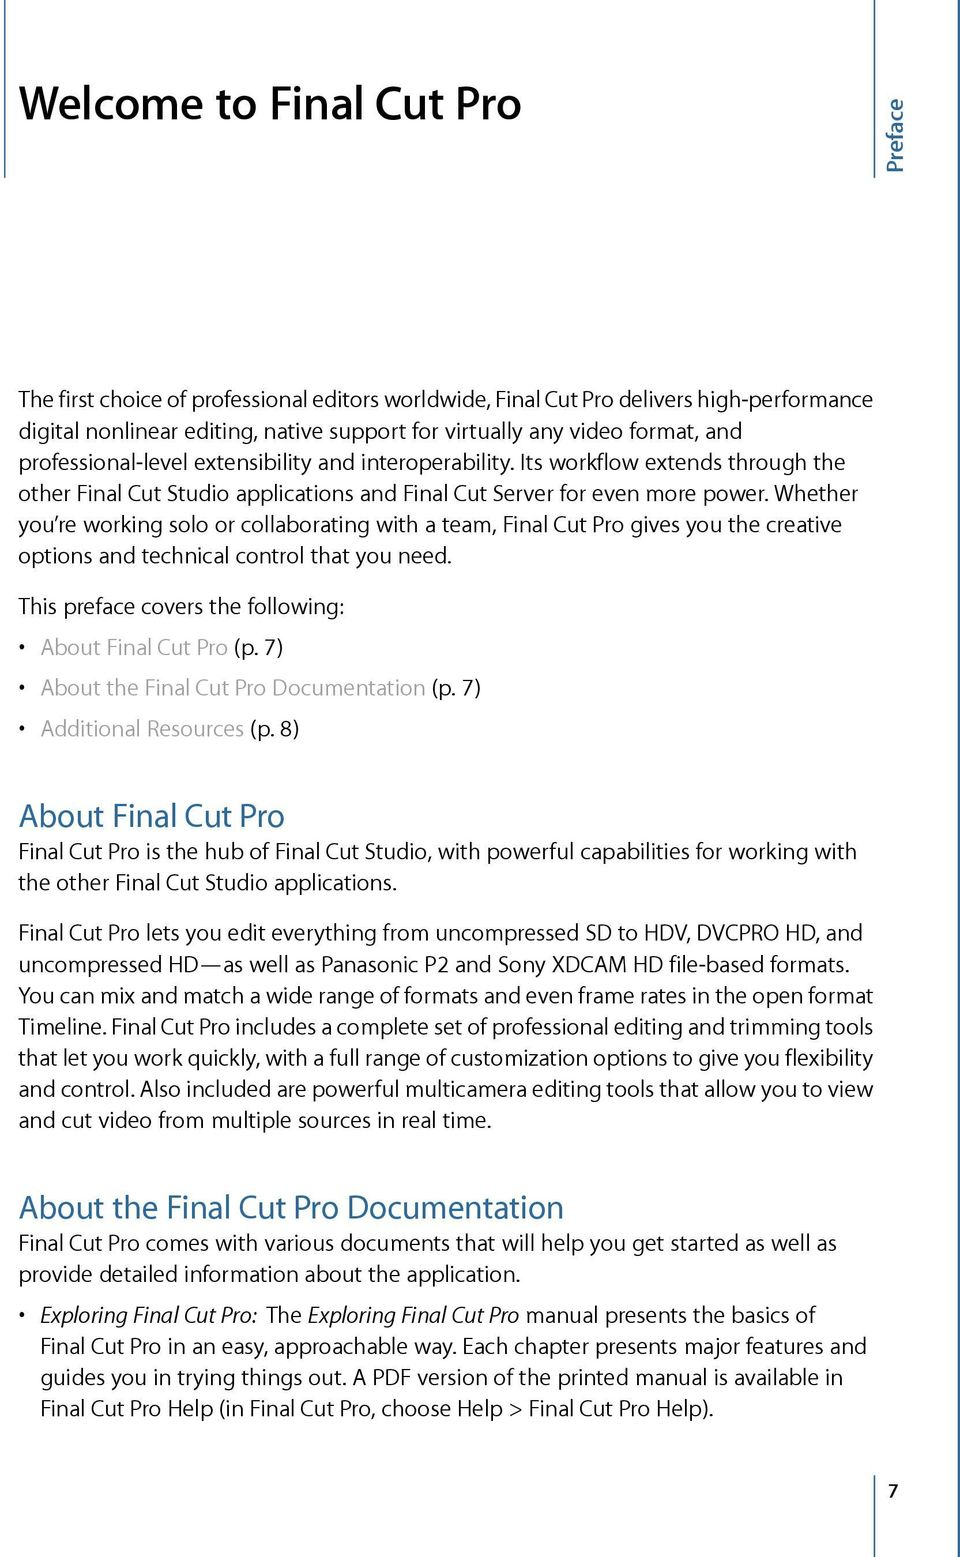 Whether you re working solo or collaborating with a team, Final Cut Pro gives you the creative options and technical control that you need. This preface covers the following: About Final Cut Pro (p.